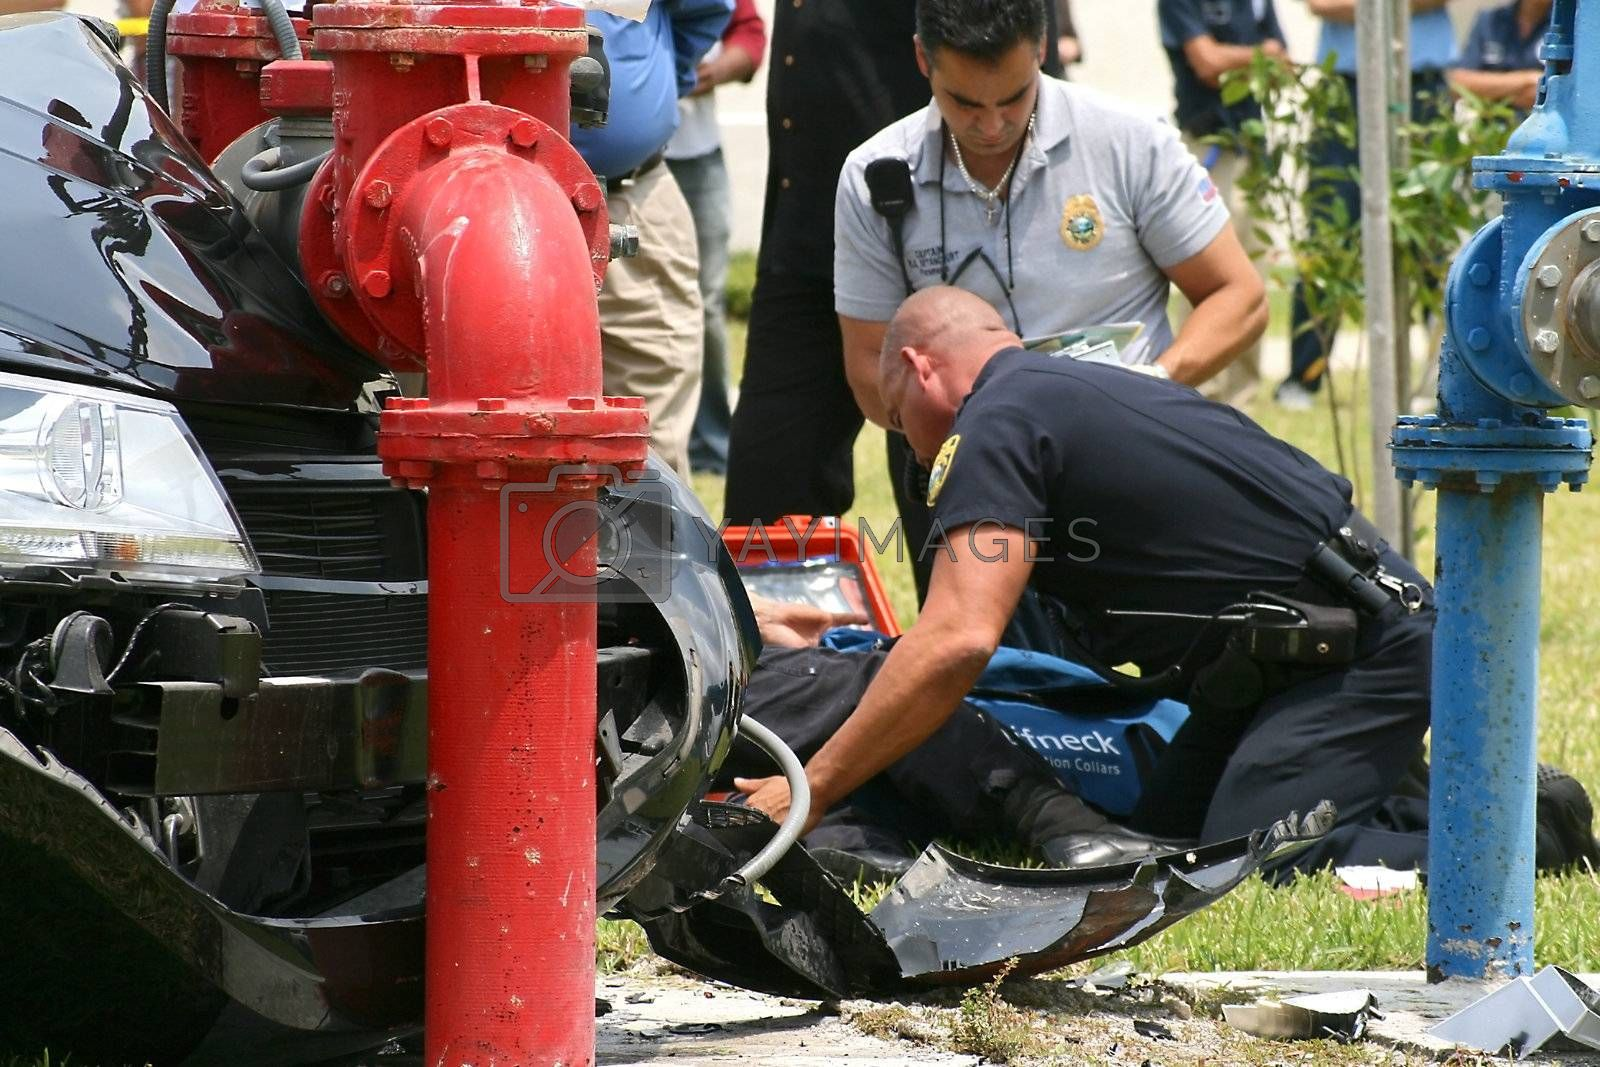 A paramedic aids a police officer injured after a car chase ends in a crash on a university campus.